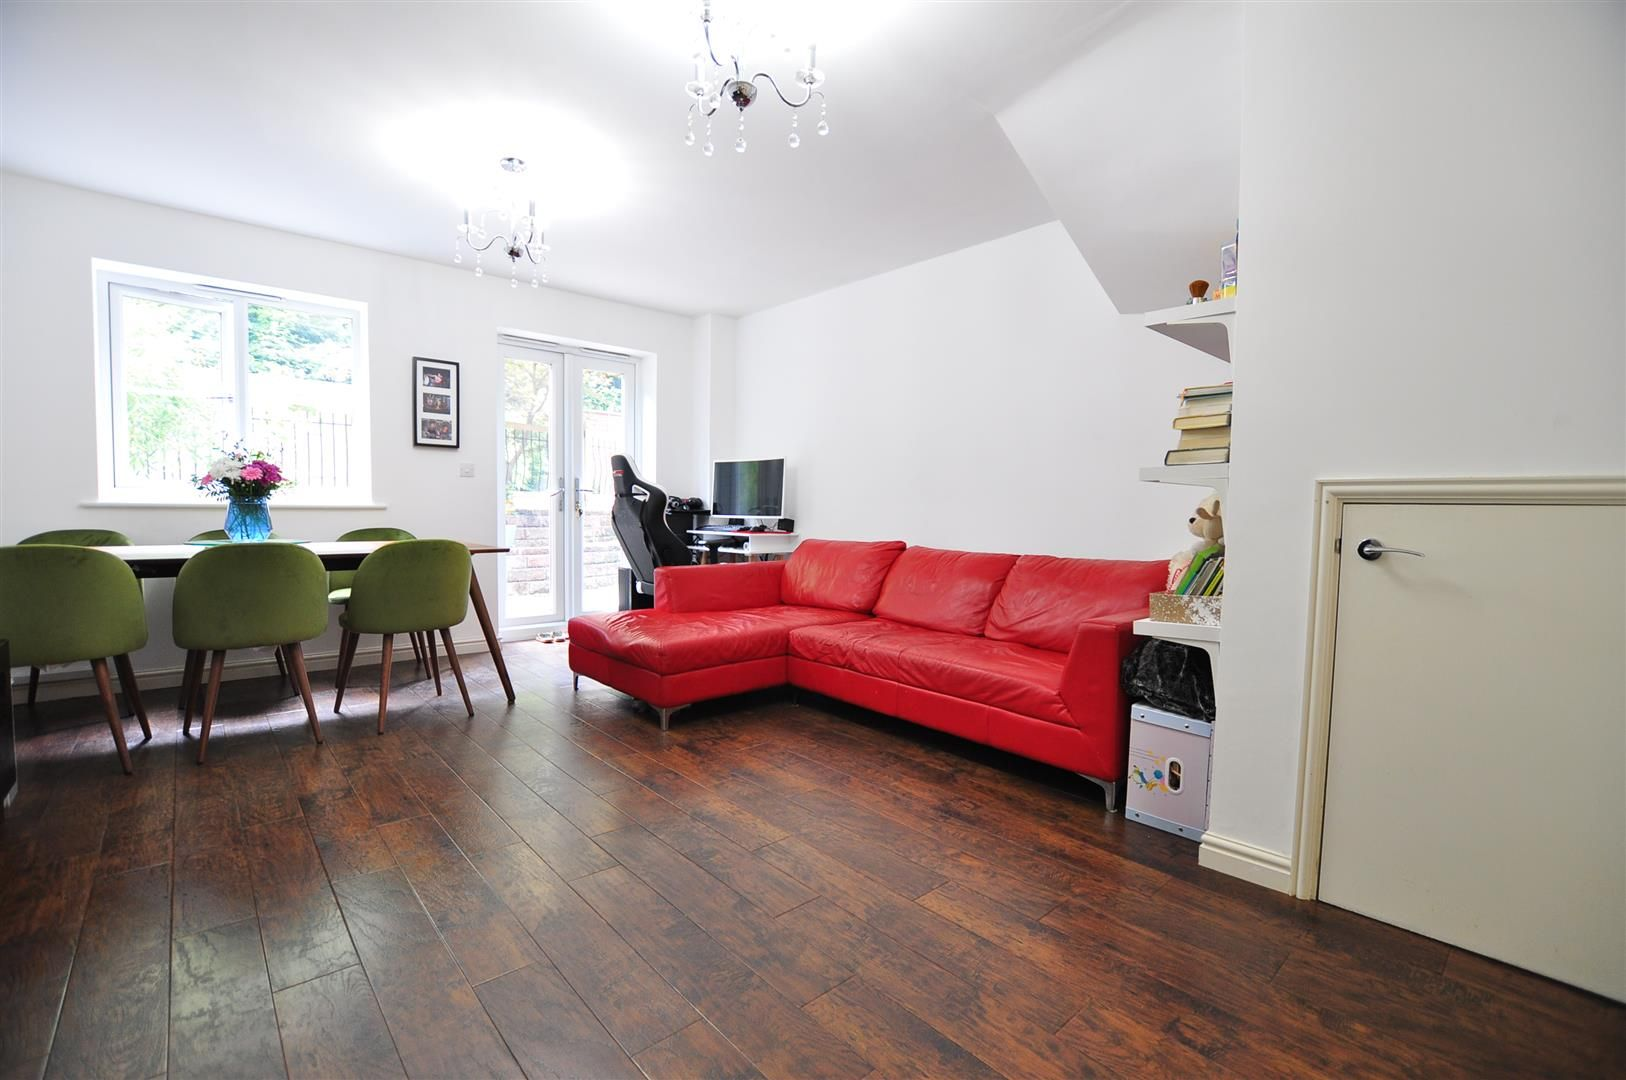 4 bed end-of-terrace for sale  - Property Image 2